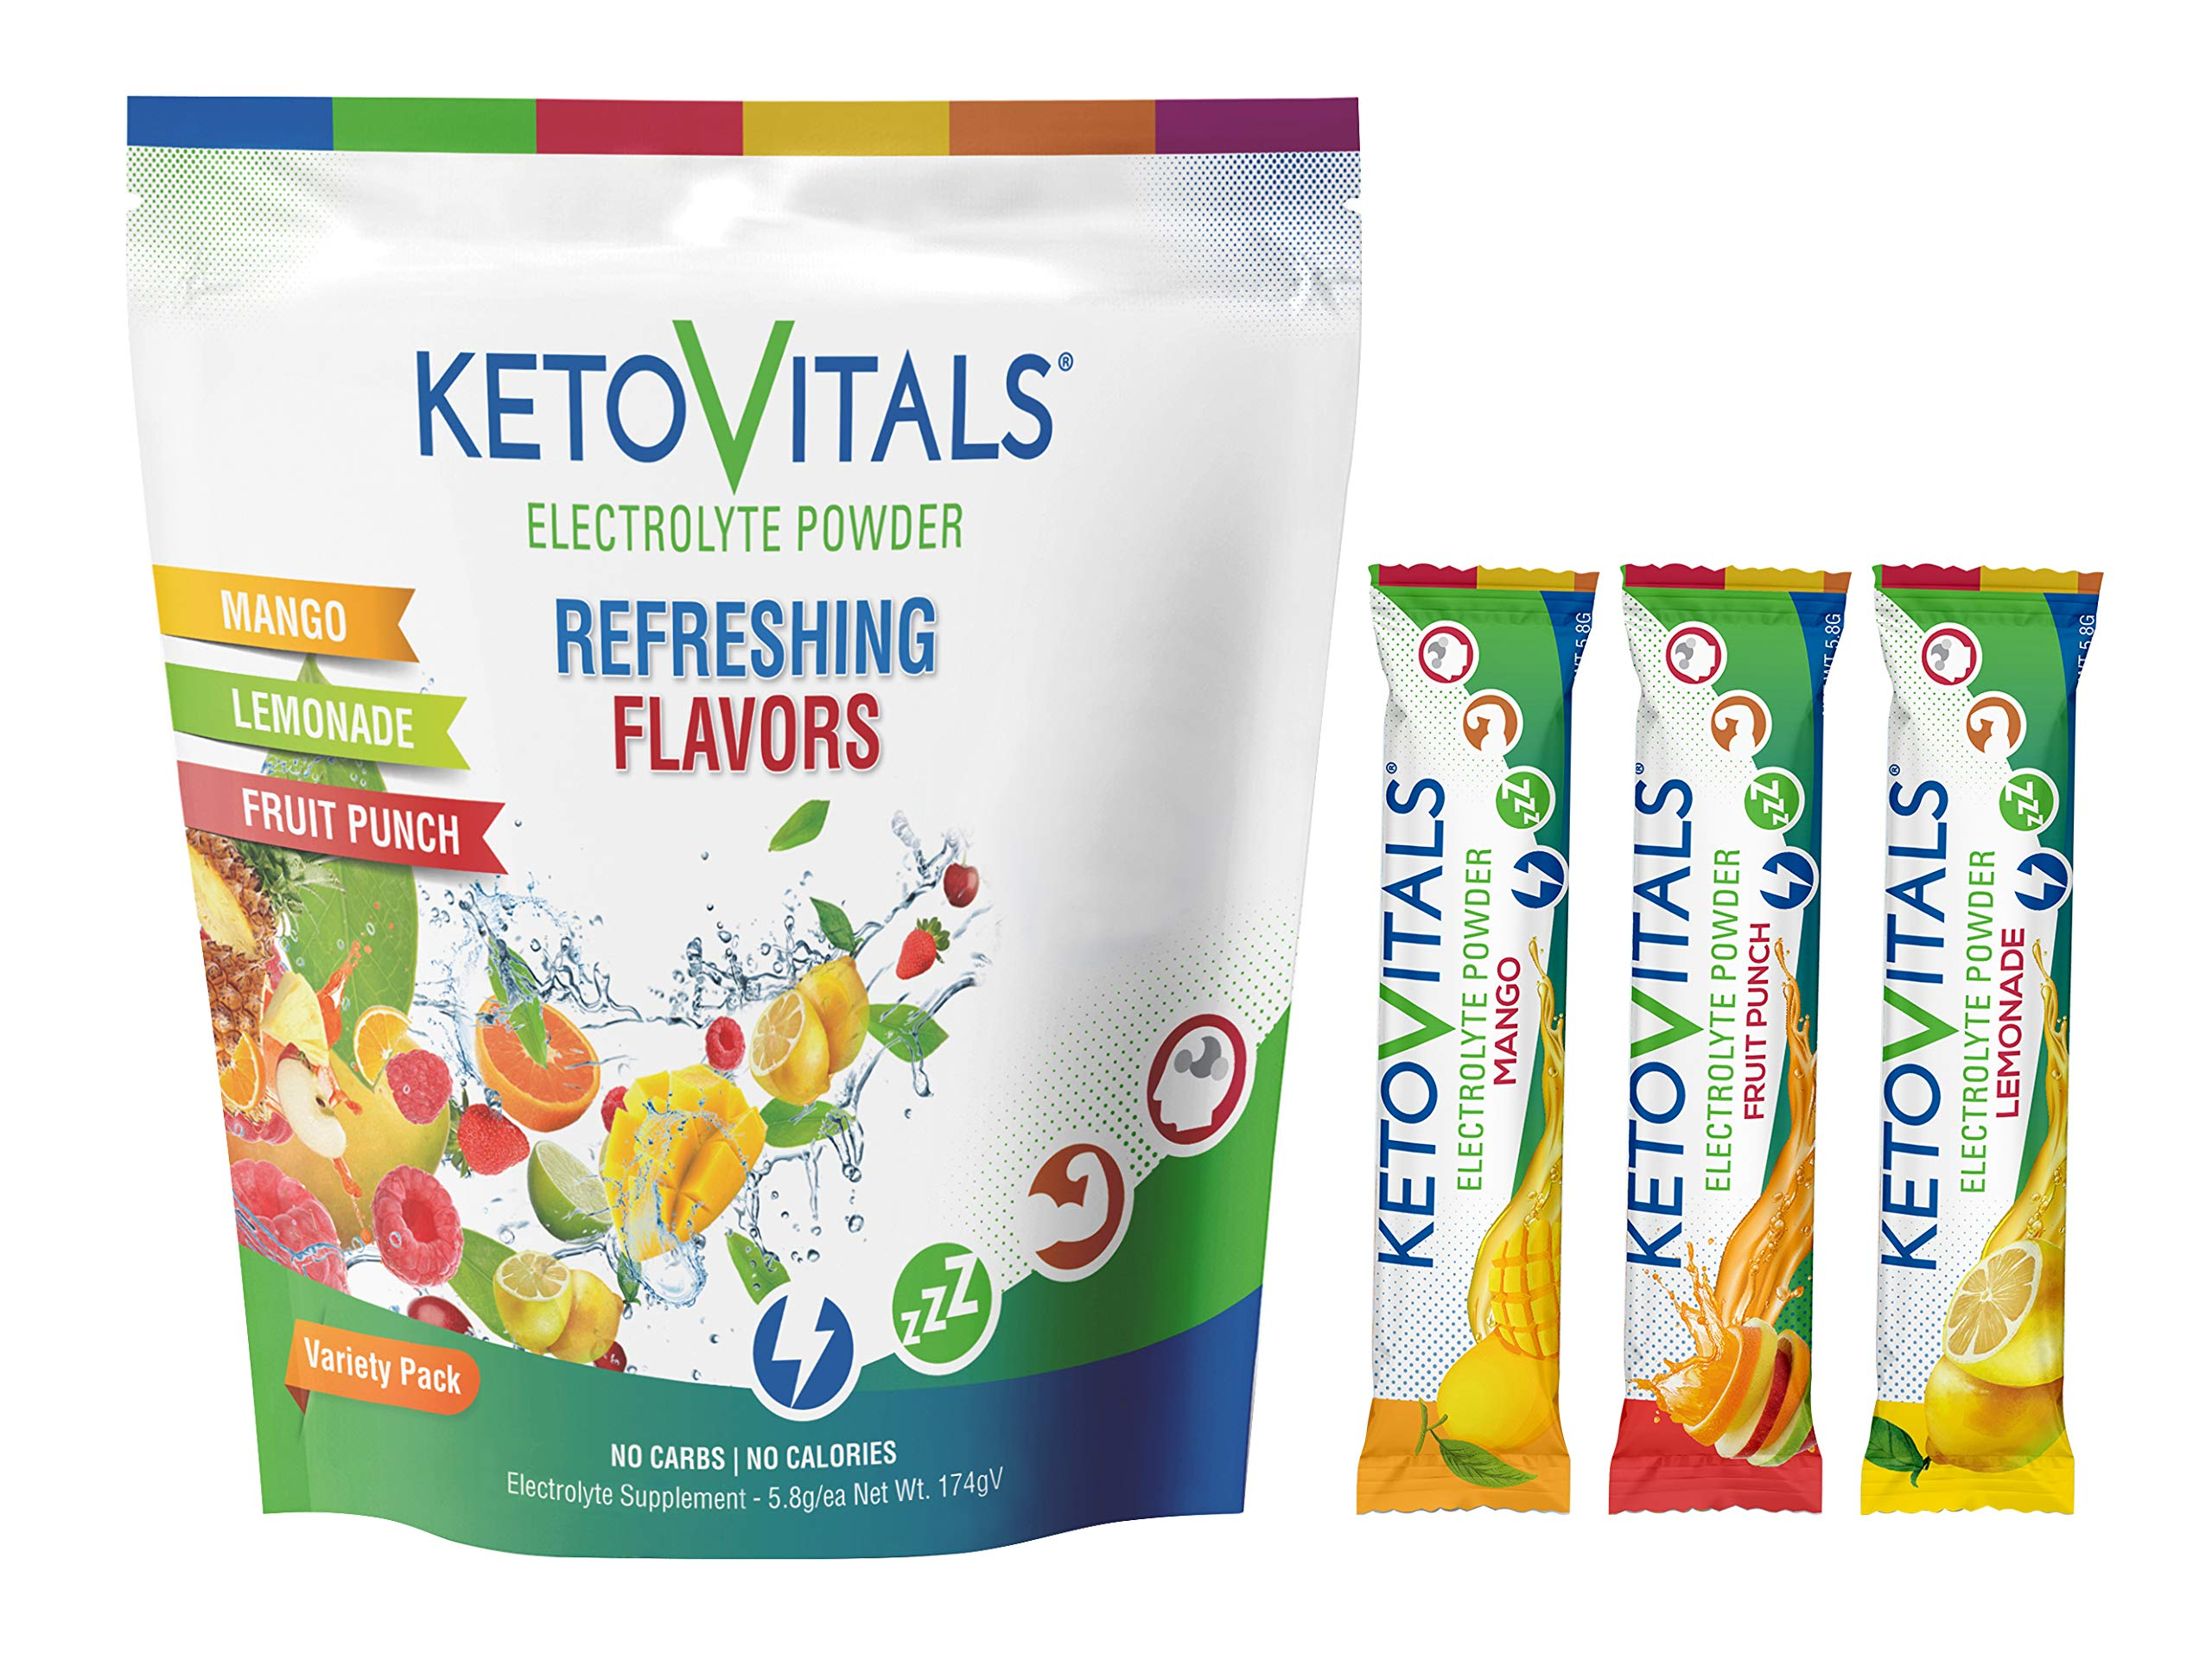 Keto Vitals Electrolyte Powder Stick Packs | Keto Friendly Electrolyte Travel Packets | Variety Pack Individual Packets | Energy Drink Mix | Zero Calorie Zero Carb (Original Assorted, 30 Count)